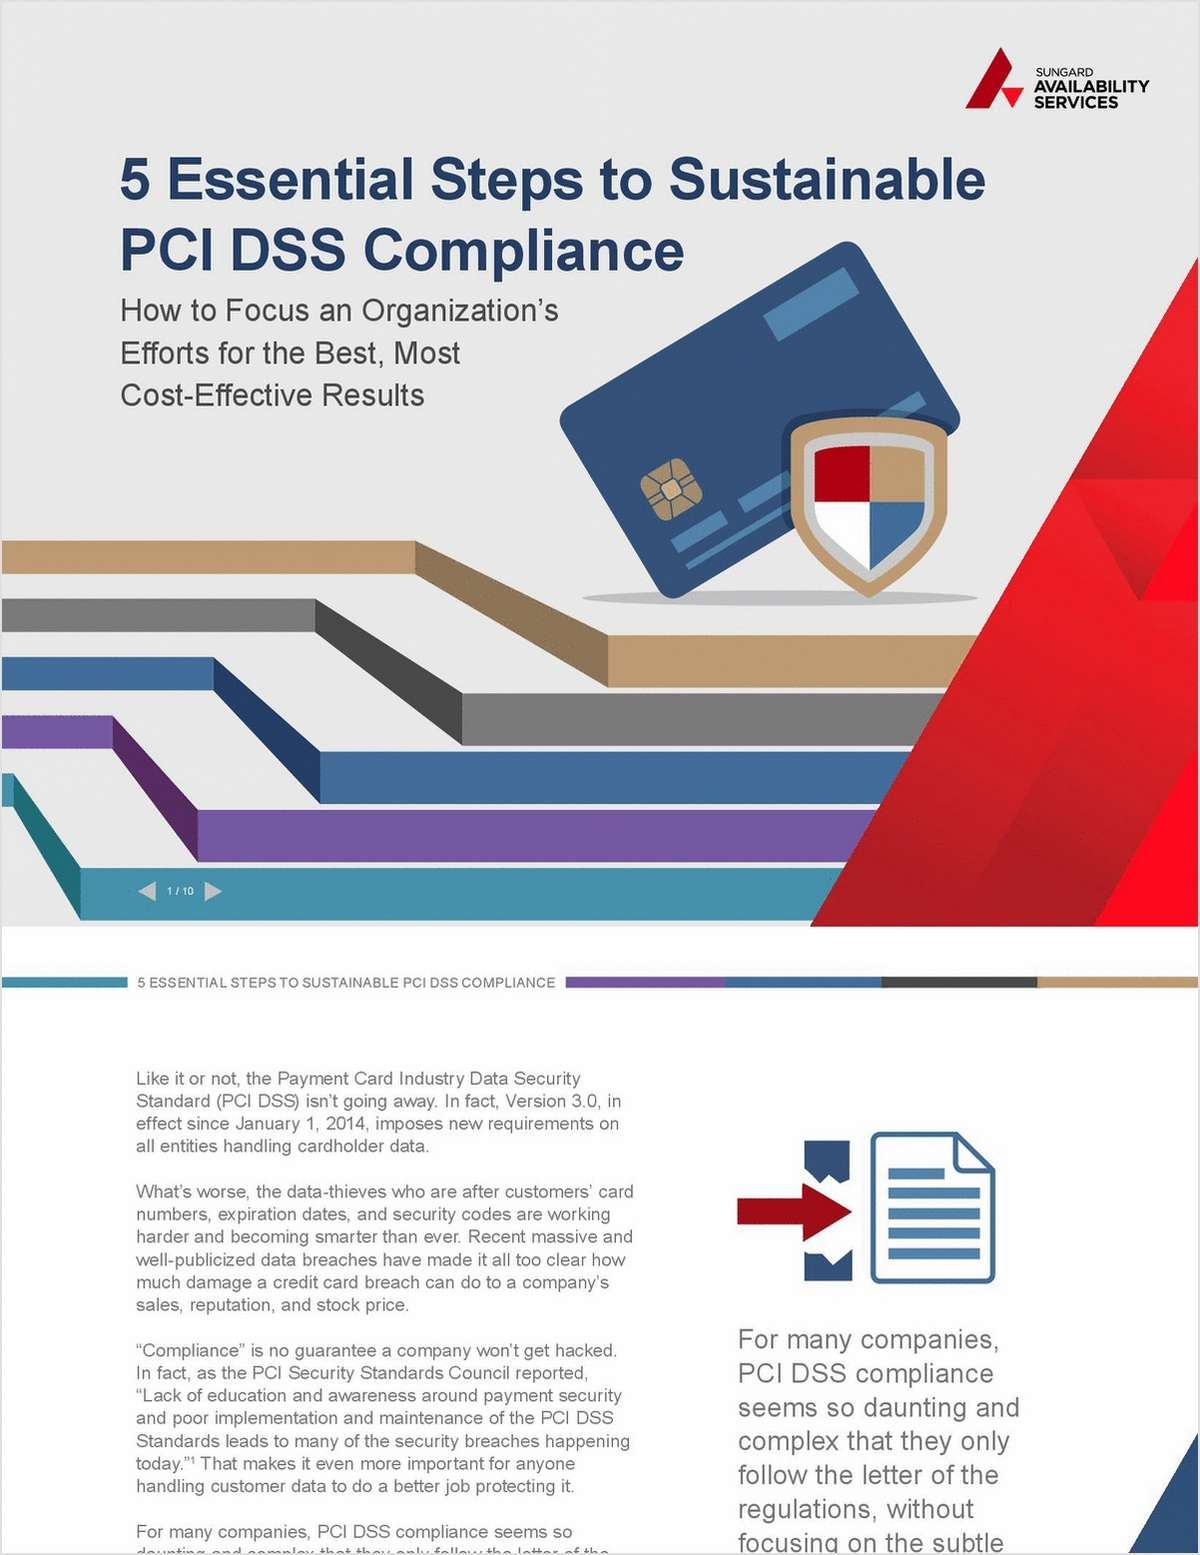 5 Essential Steps to Sustainable PCI DSS Compliance